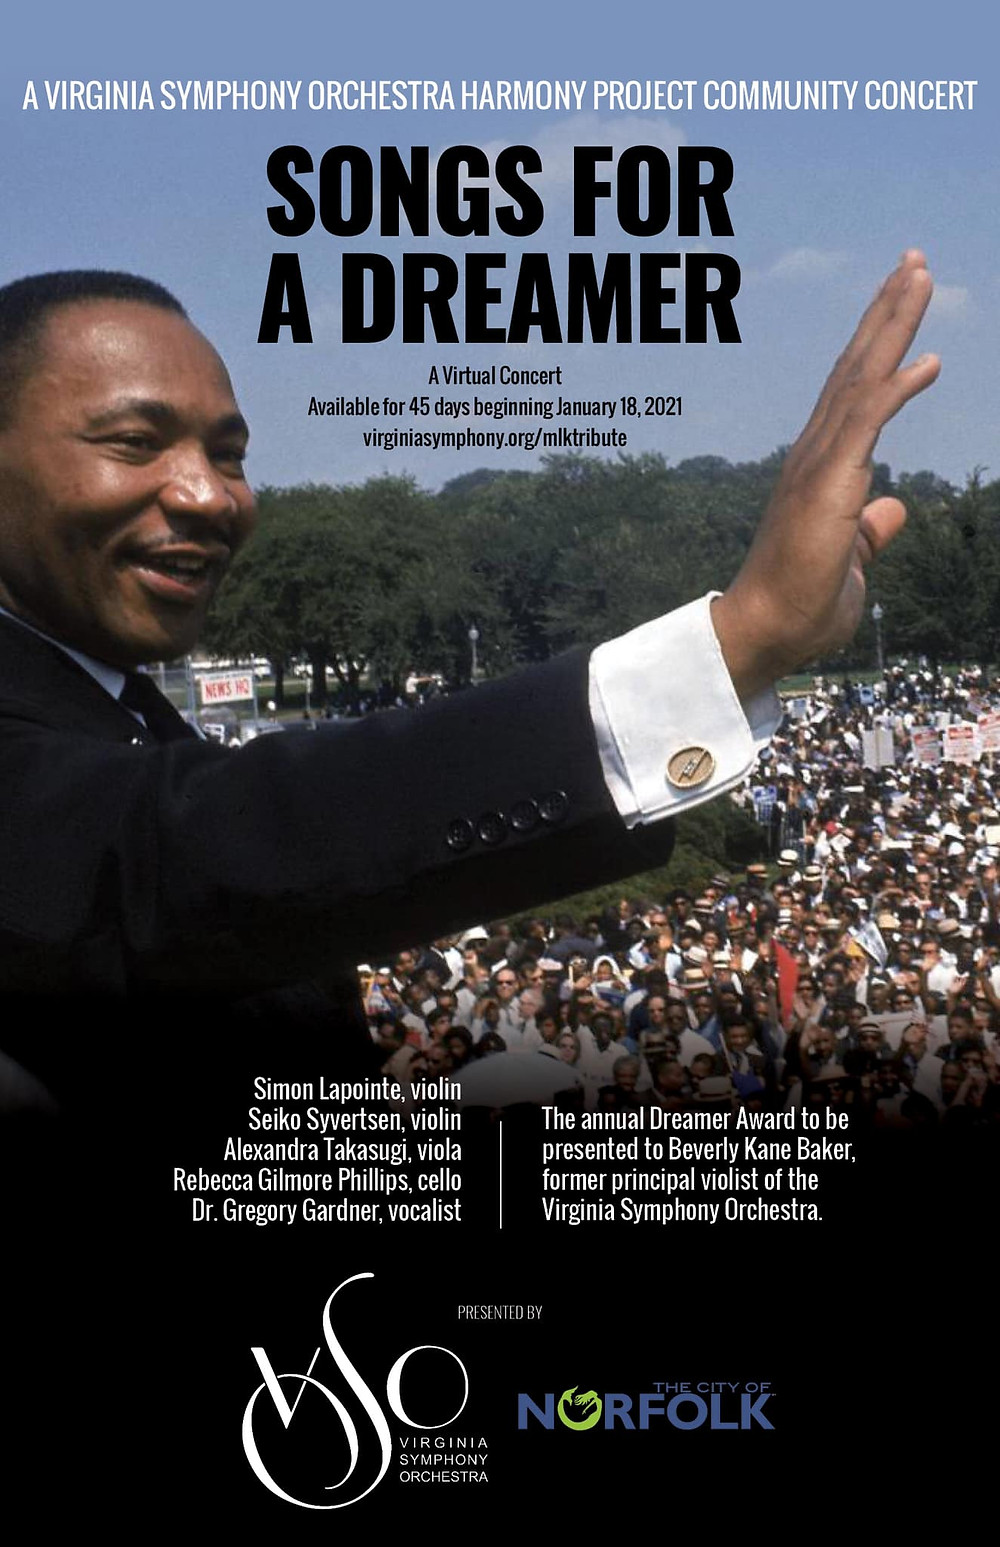 Dr King waves in front of a large crowd of marching citizens. A virginia symphony orchestra harmony project community concert, songs for a dreamer, a virtual concert, available for 45 days beginning January 18, 2021 virginiasymphonyorchestra.org/mlktribute, Simon Lapointe, violin, Seiko Syvertsen, violin, Alexandra Takasugi, viola, Rebecca Gilmore Philips, cello, Dr. Gregory Gardner, vocalist, The Annual Dreamer Award to be presented to Beverly Kane Baker, former principal violinist of teh VSO, VSO and City of Norfolk Logos.